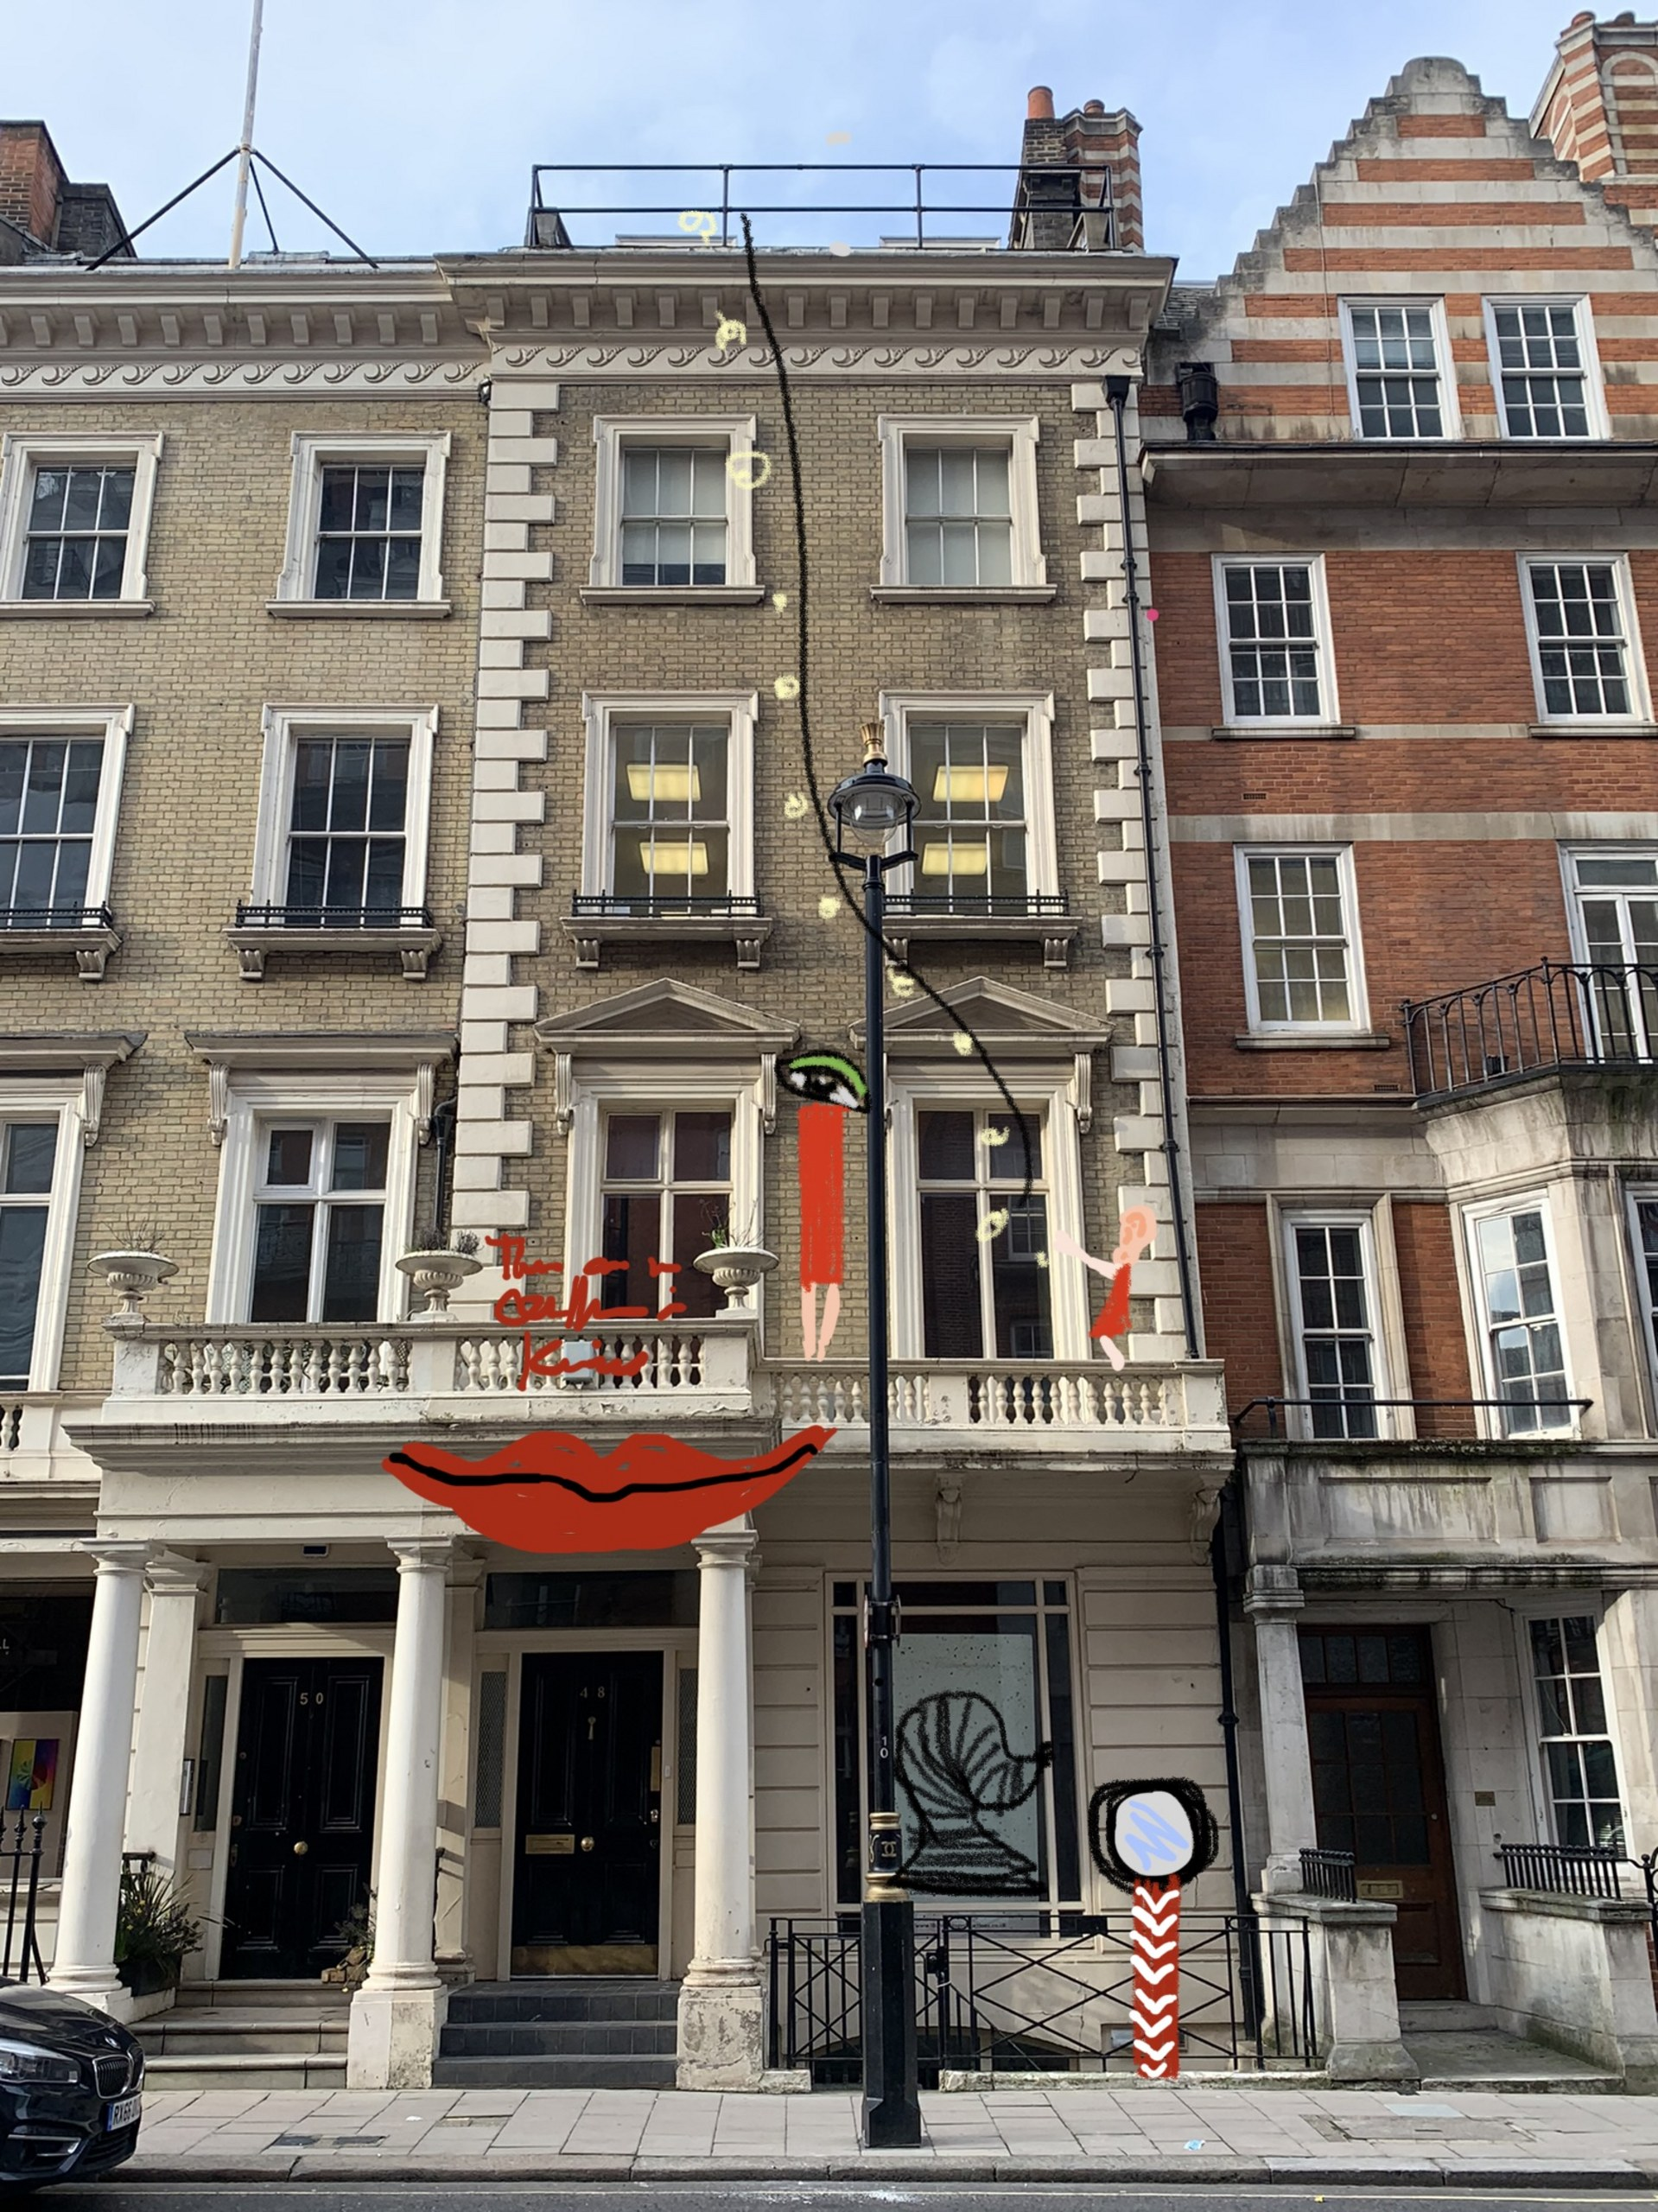 Installation proposal for 48 Brook street in London